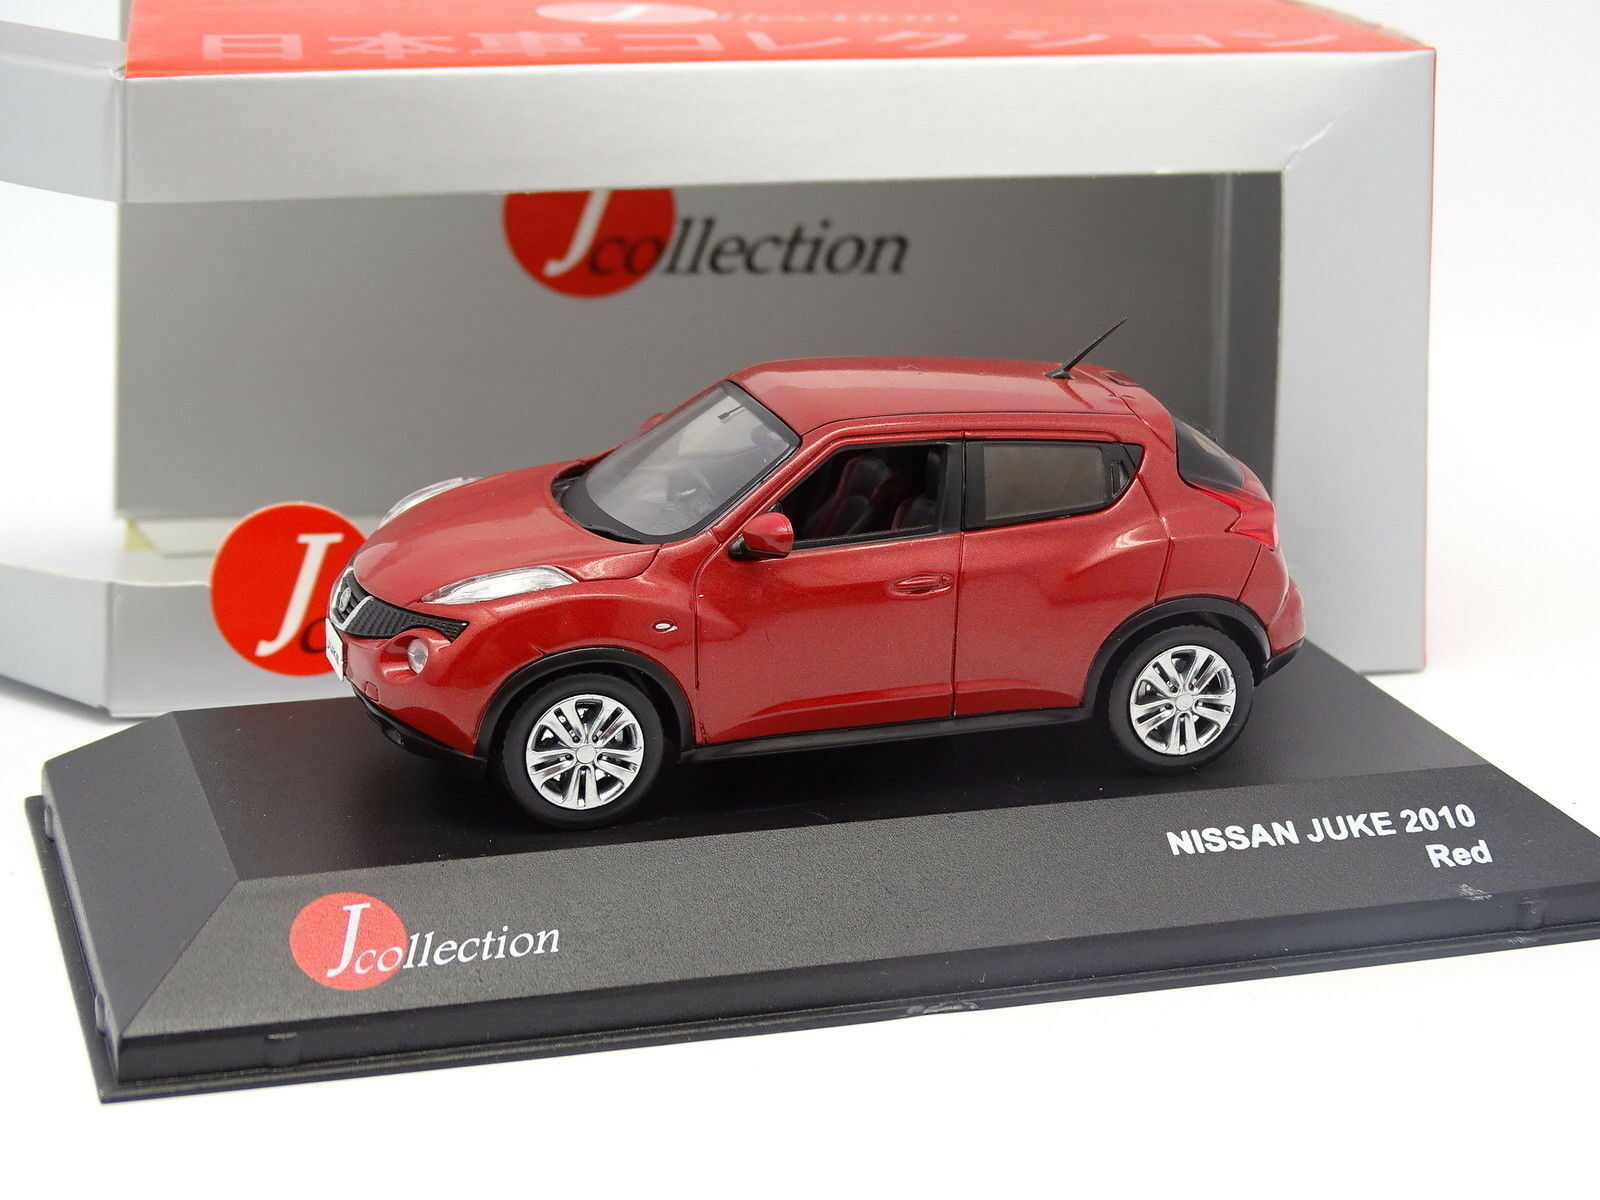 J Collection 1 43 - Nissan Juke 2010 red